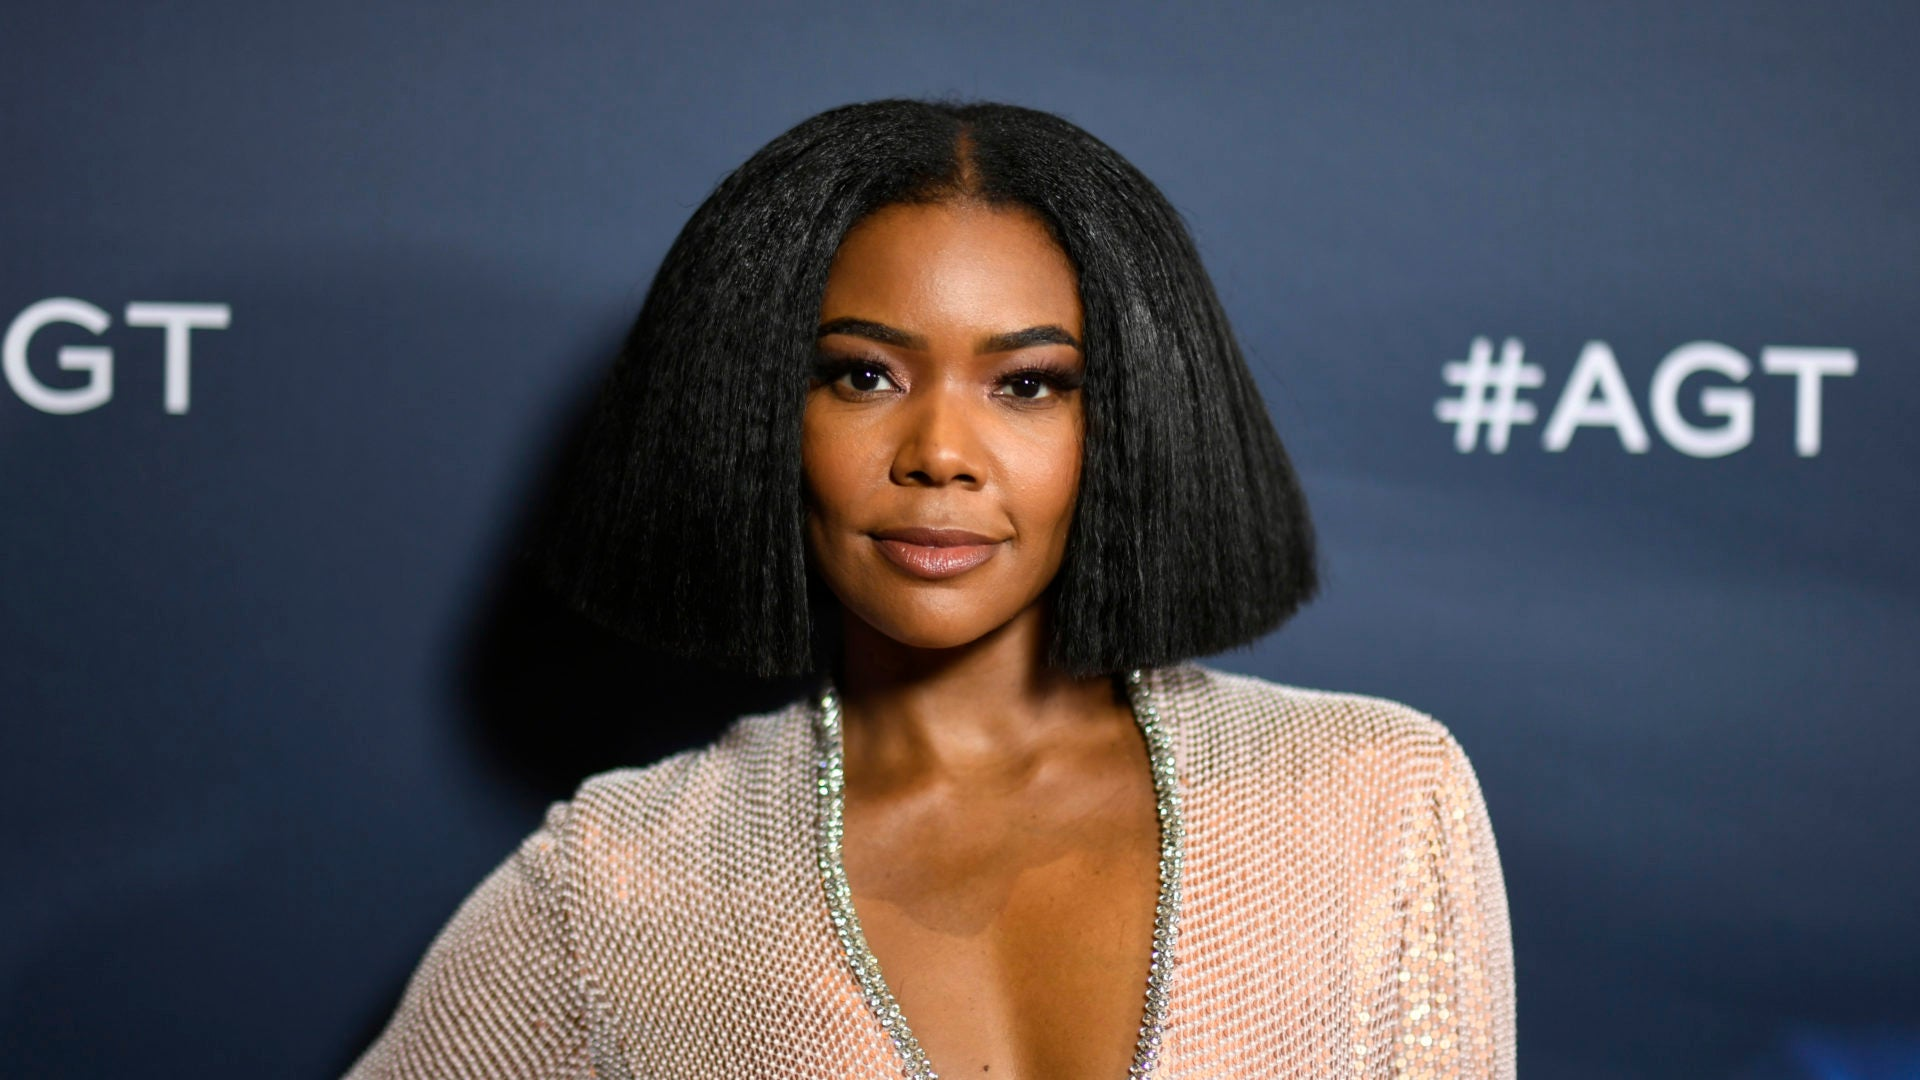 Gabrielle Union Claps Back At Terry Crews Saying 'America's Got Talent' Was 'Diverse'